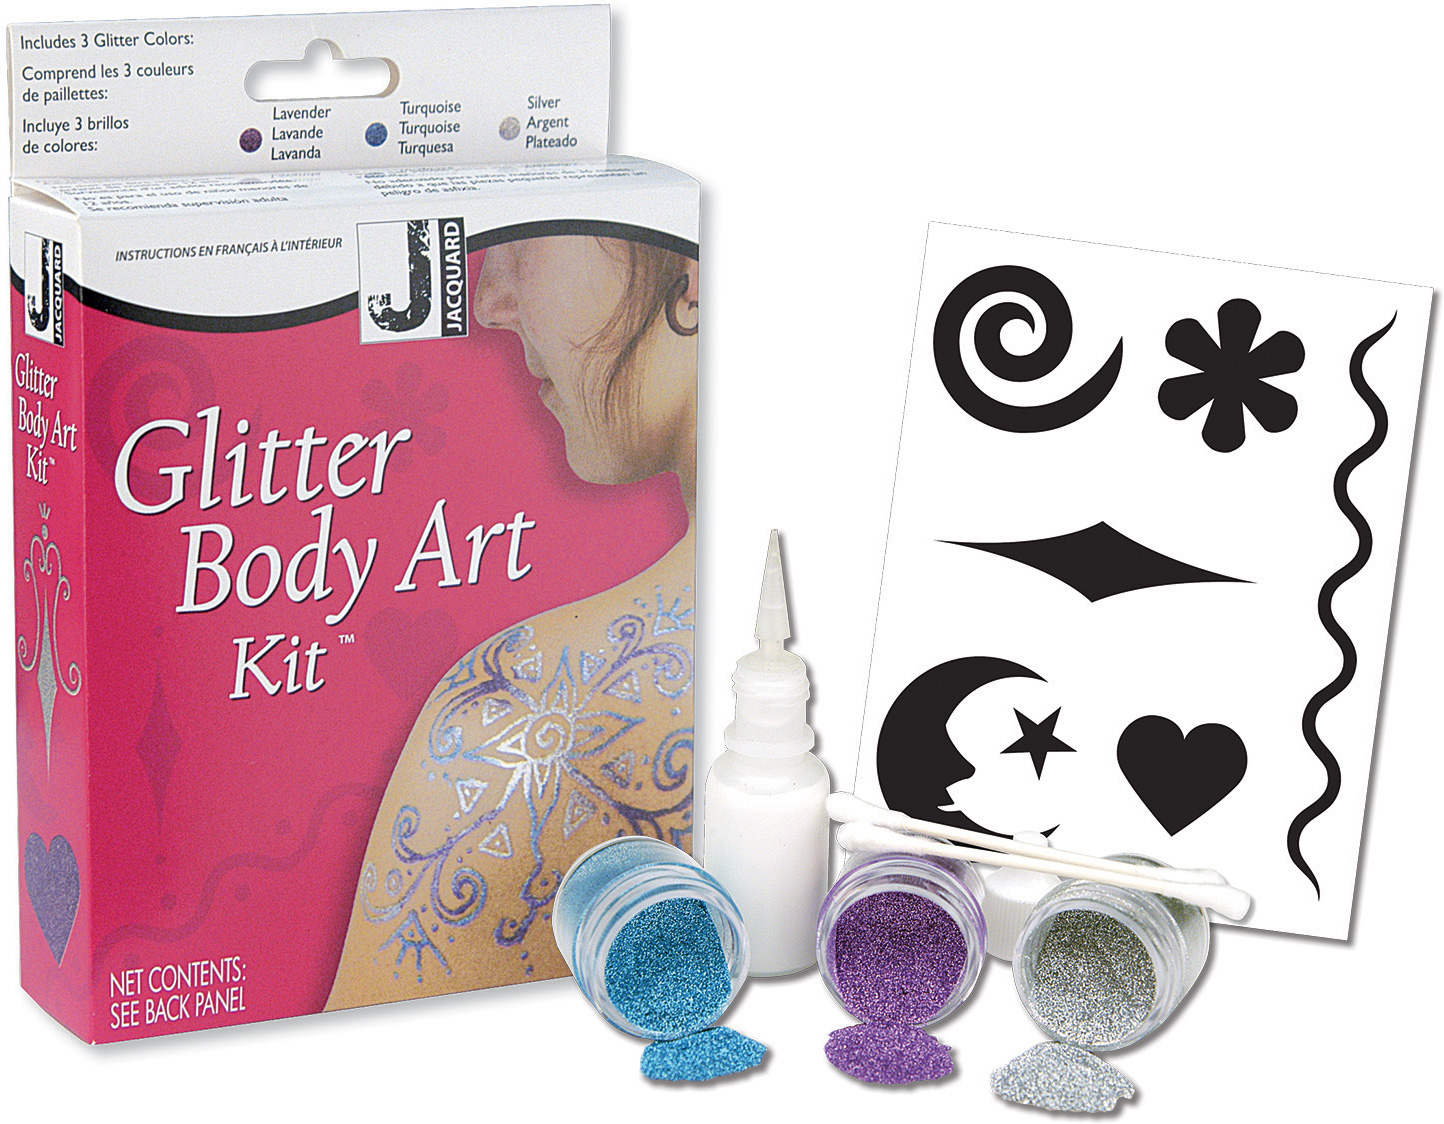 Glitter Body Art Kit